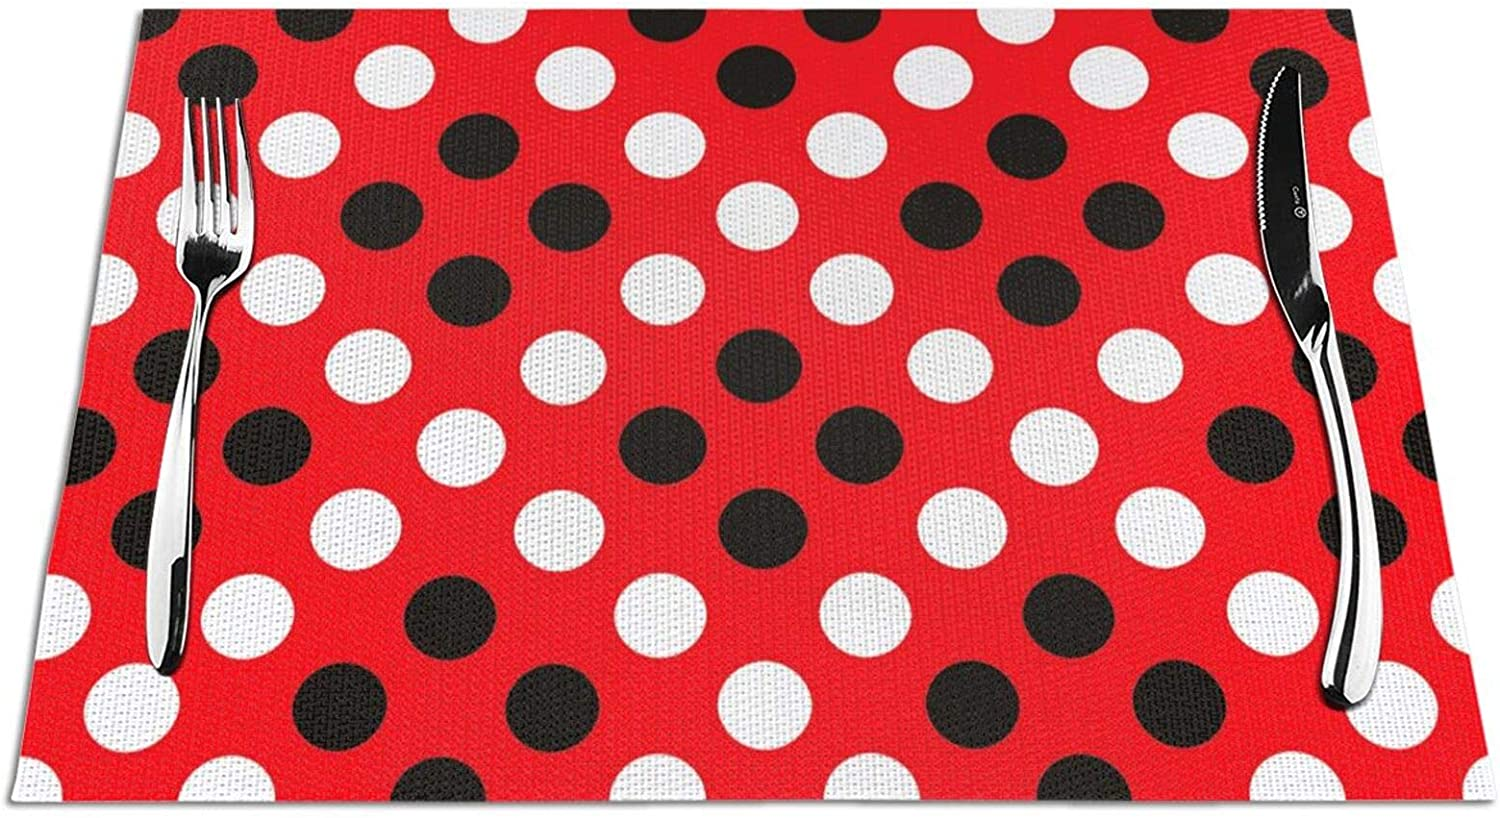 KPJDWEDS Red White Polka dot Easy Special sale item Placemats to Clean Washable 4 years warranty